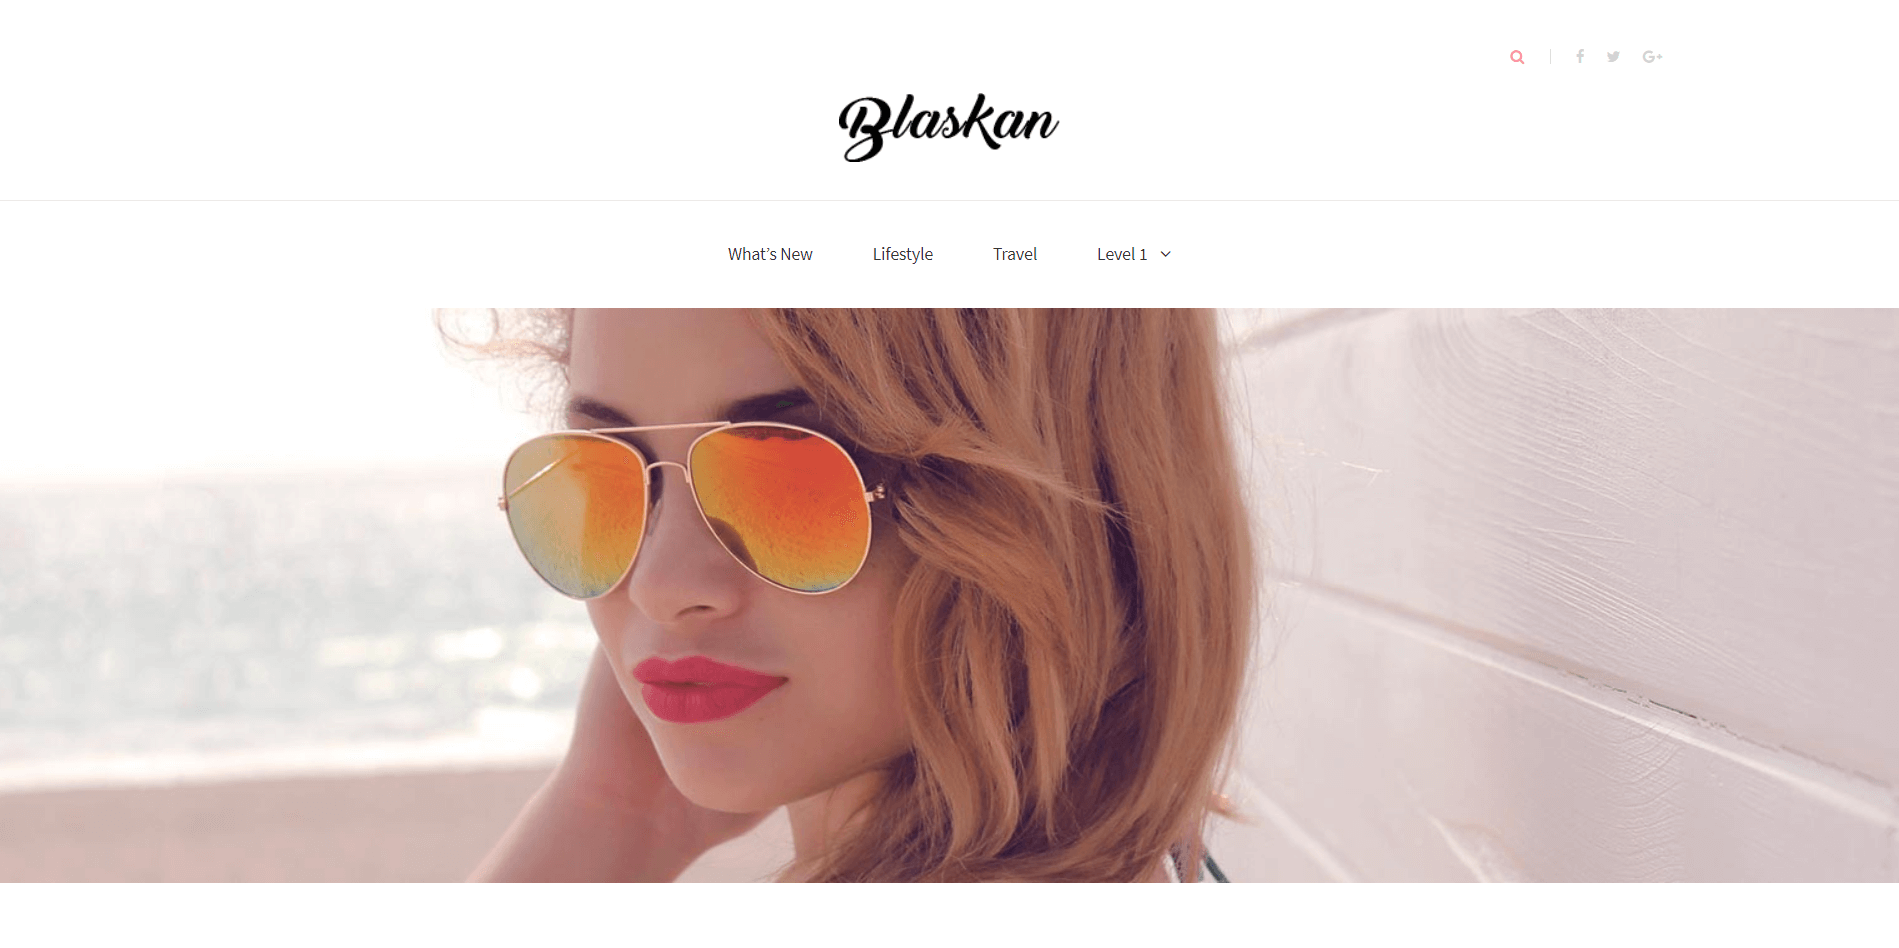 Blaskan Minimal WordPress Theme